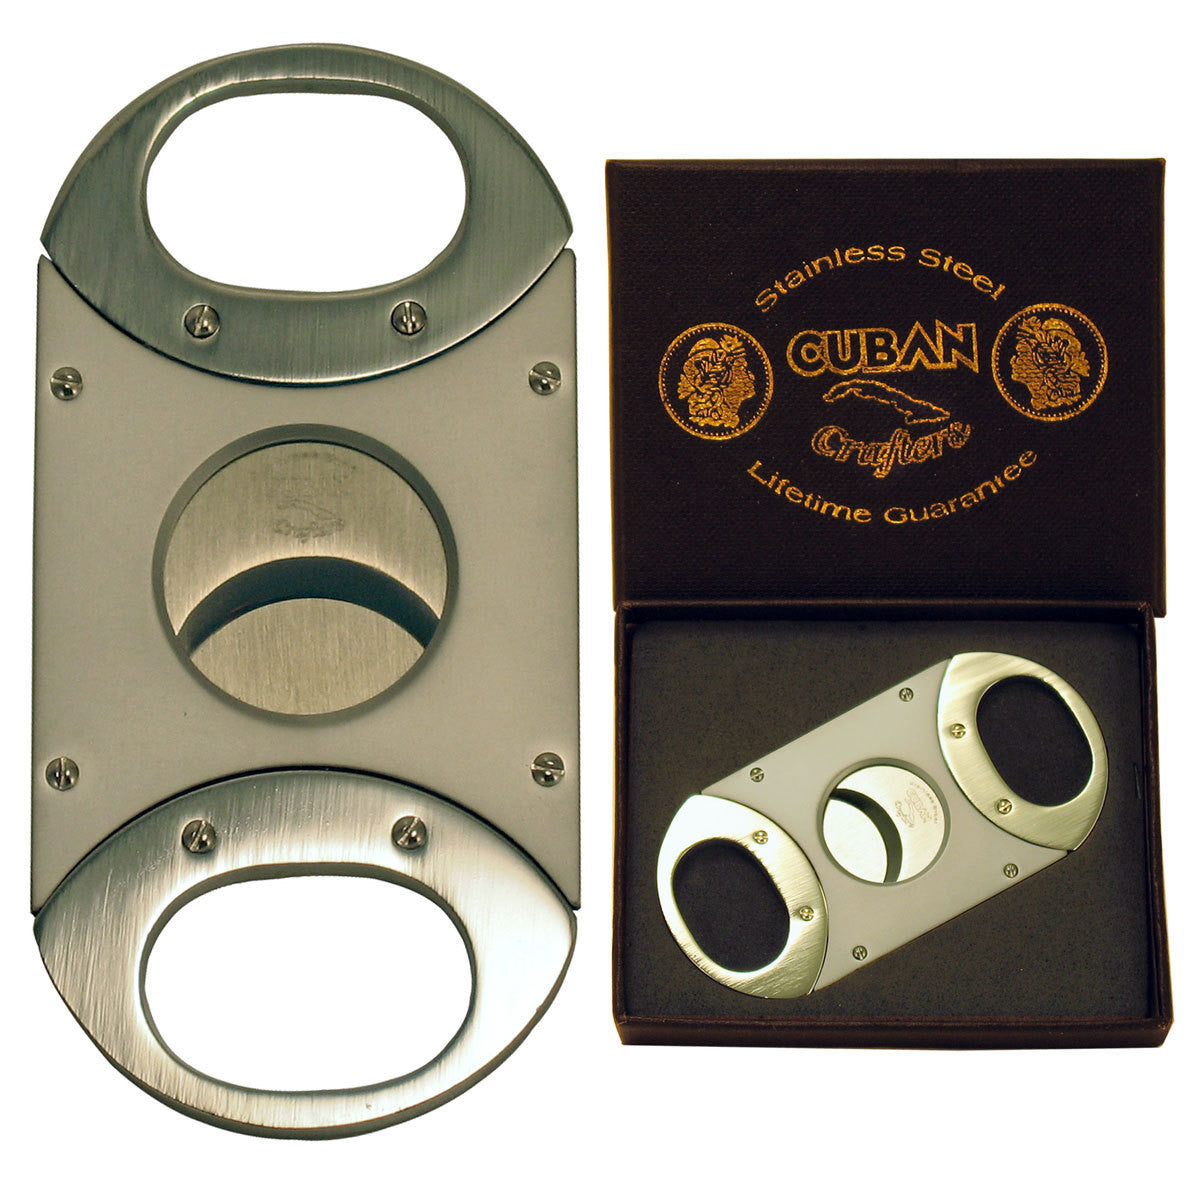 Unique Cigar Cutter Copper with Stainless Steel Blades - Humidors Wholesaler